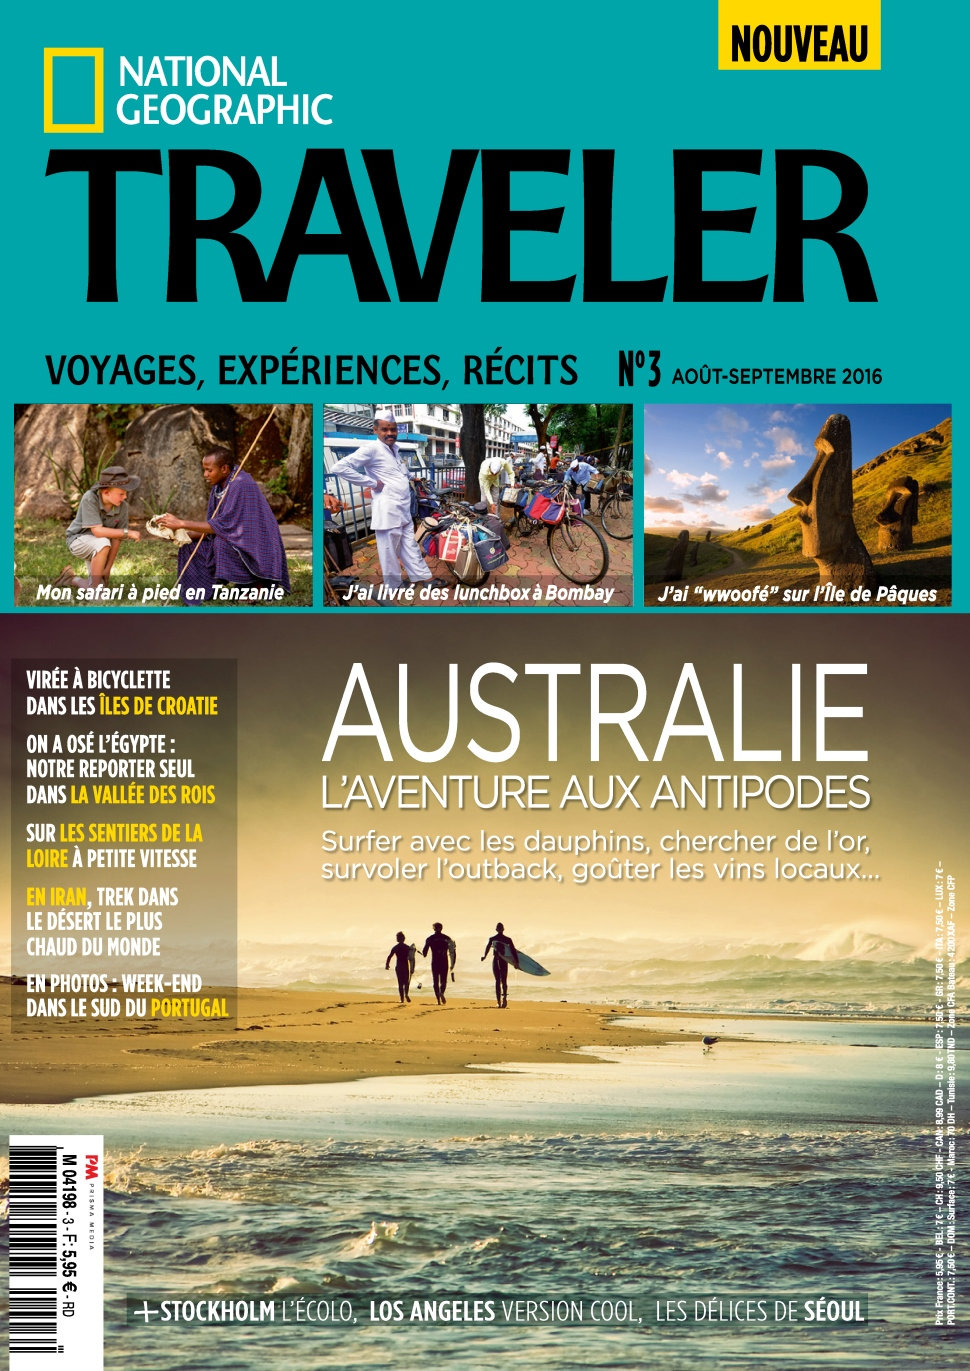 National Geographic Traveler N°3 - Septembre 2016